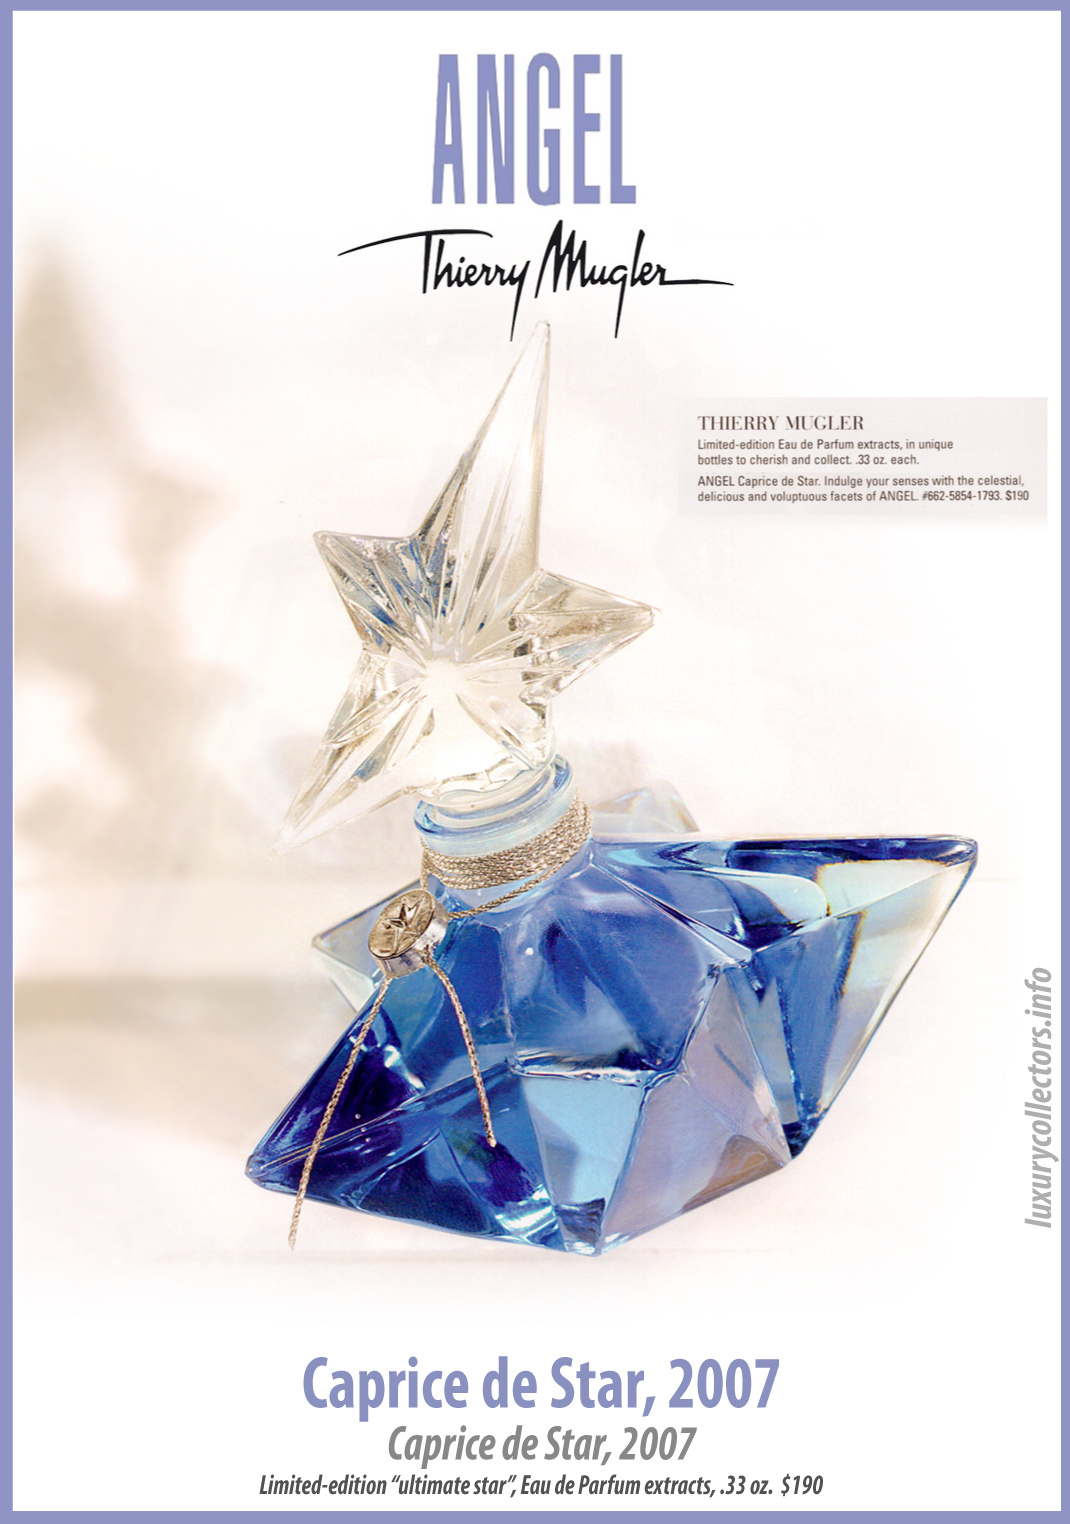 Thierry Mugler Angel Perfume Caprice de Star Ultimate Star (Etoile), 2007. Perfume Bottle Collecting